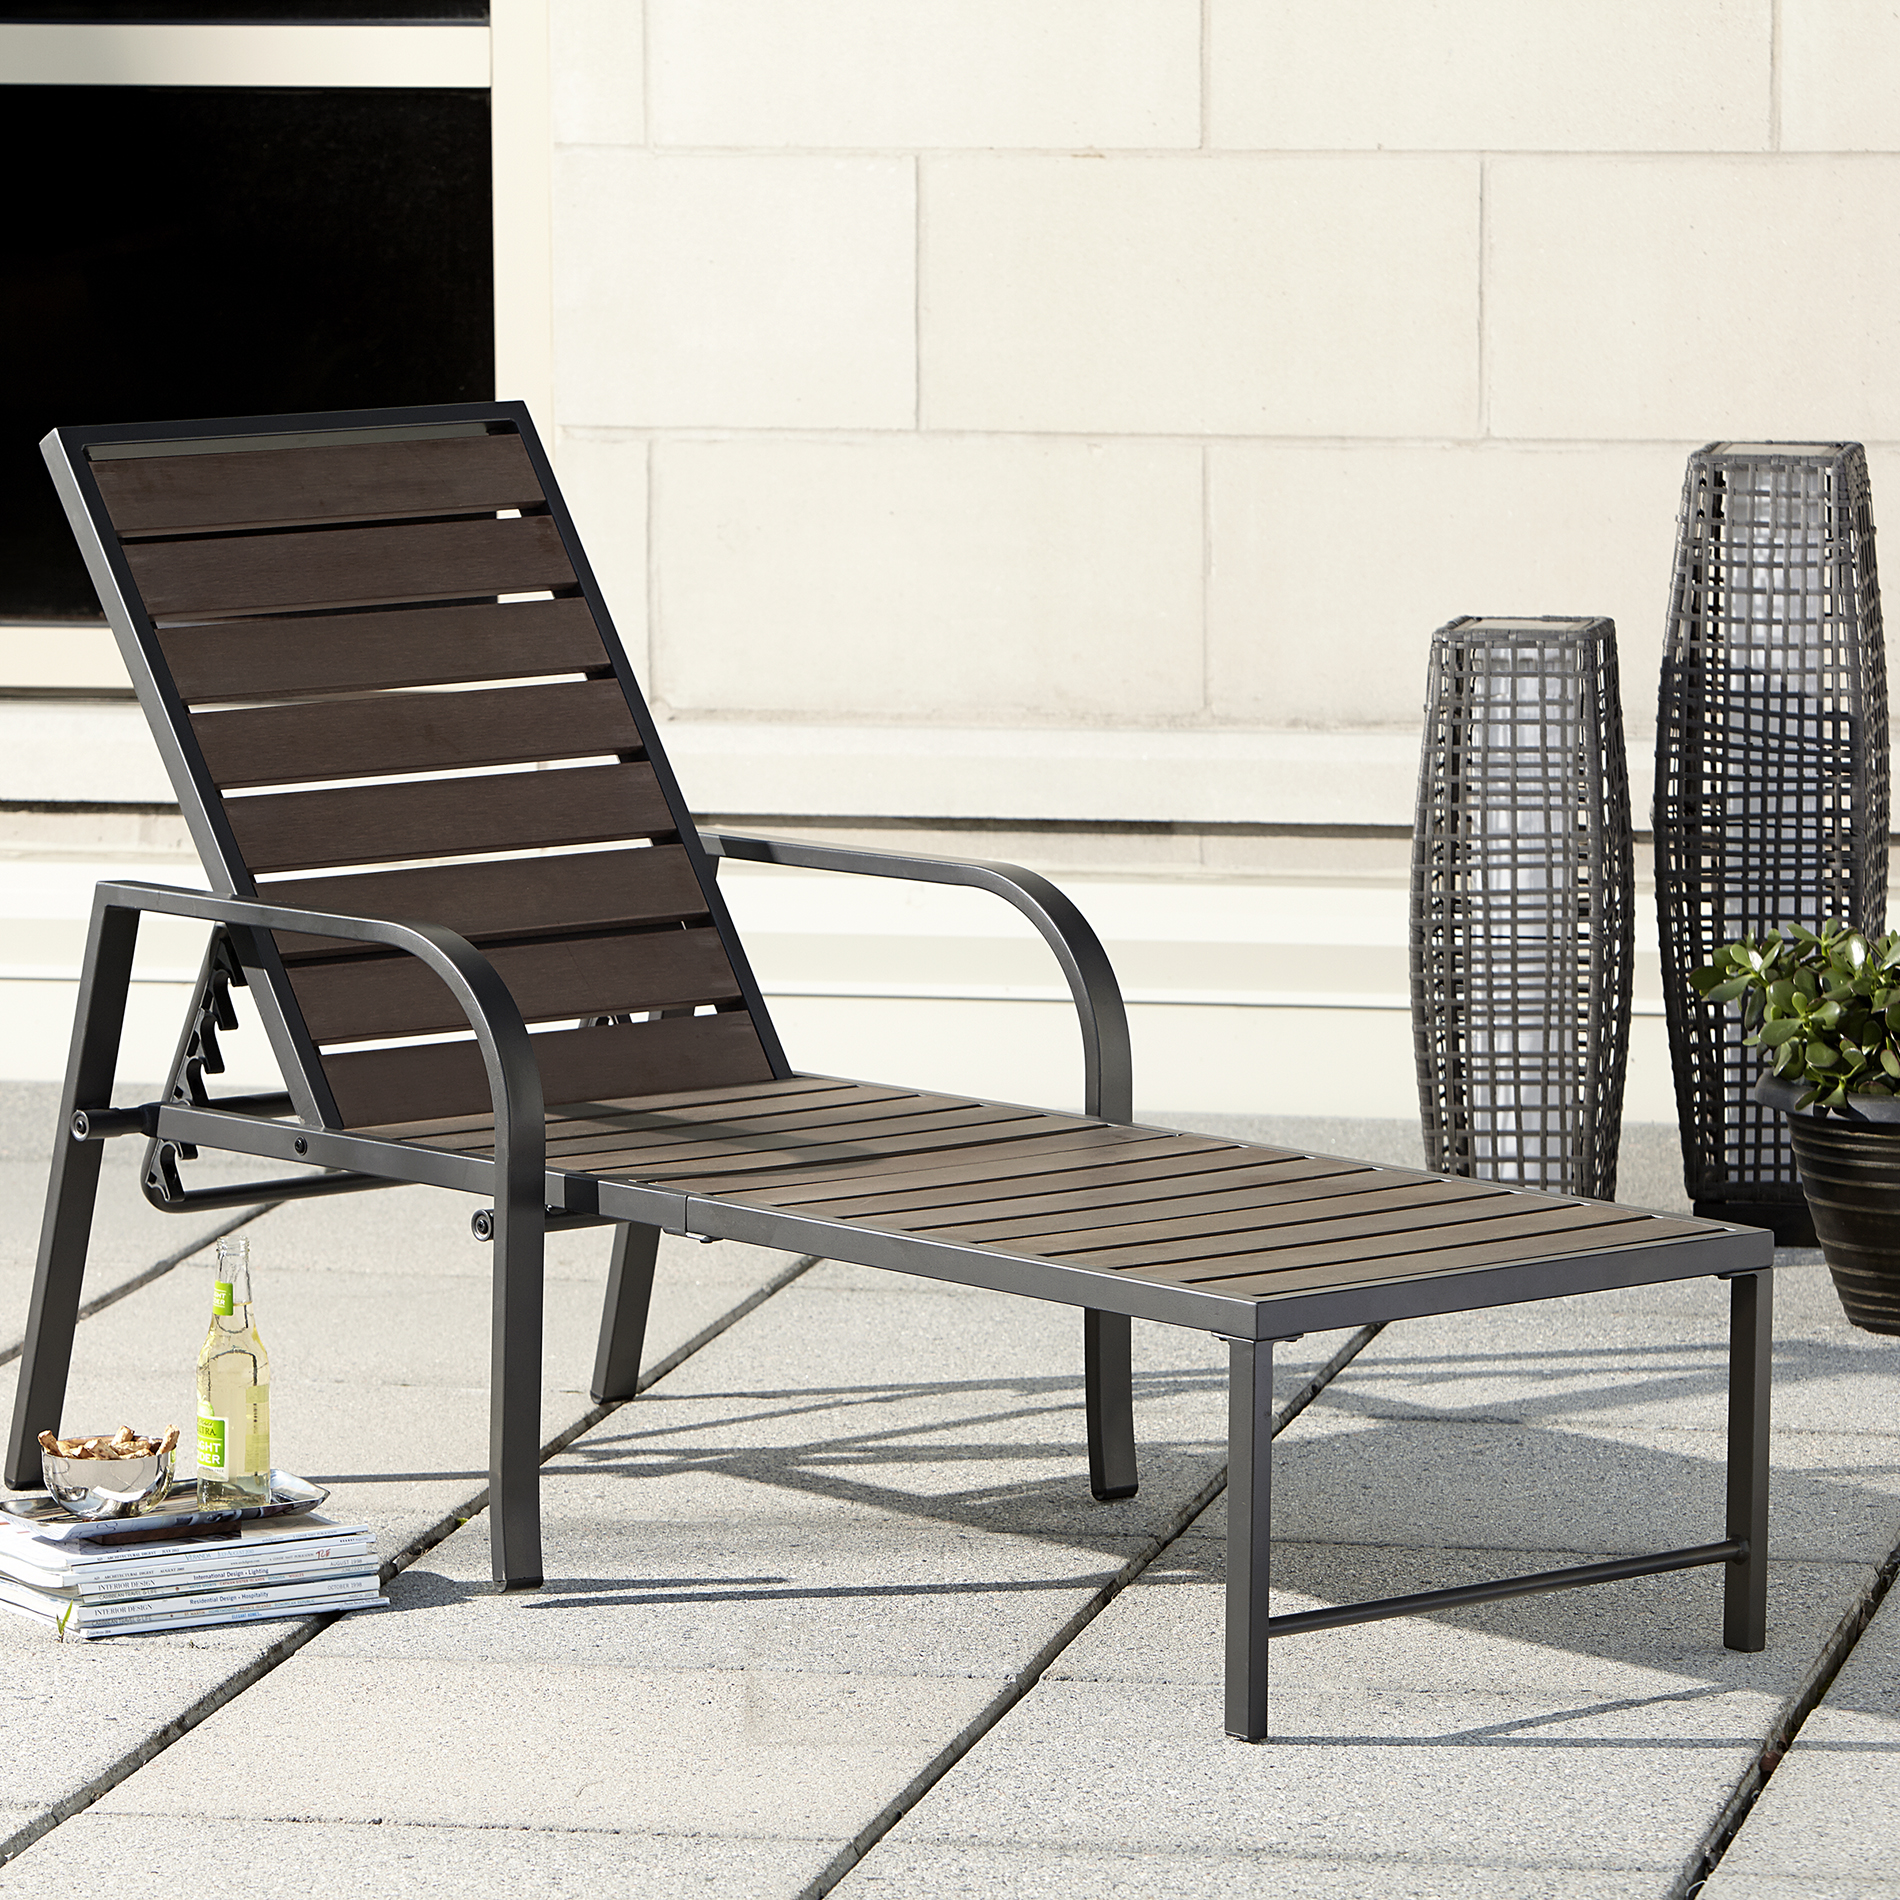 sears lounge chairs chromcraft dining ty pennington style quincy chaise outdoor living patio